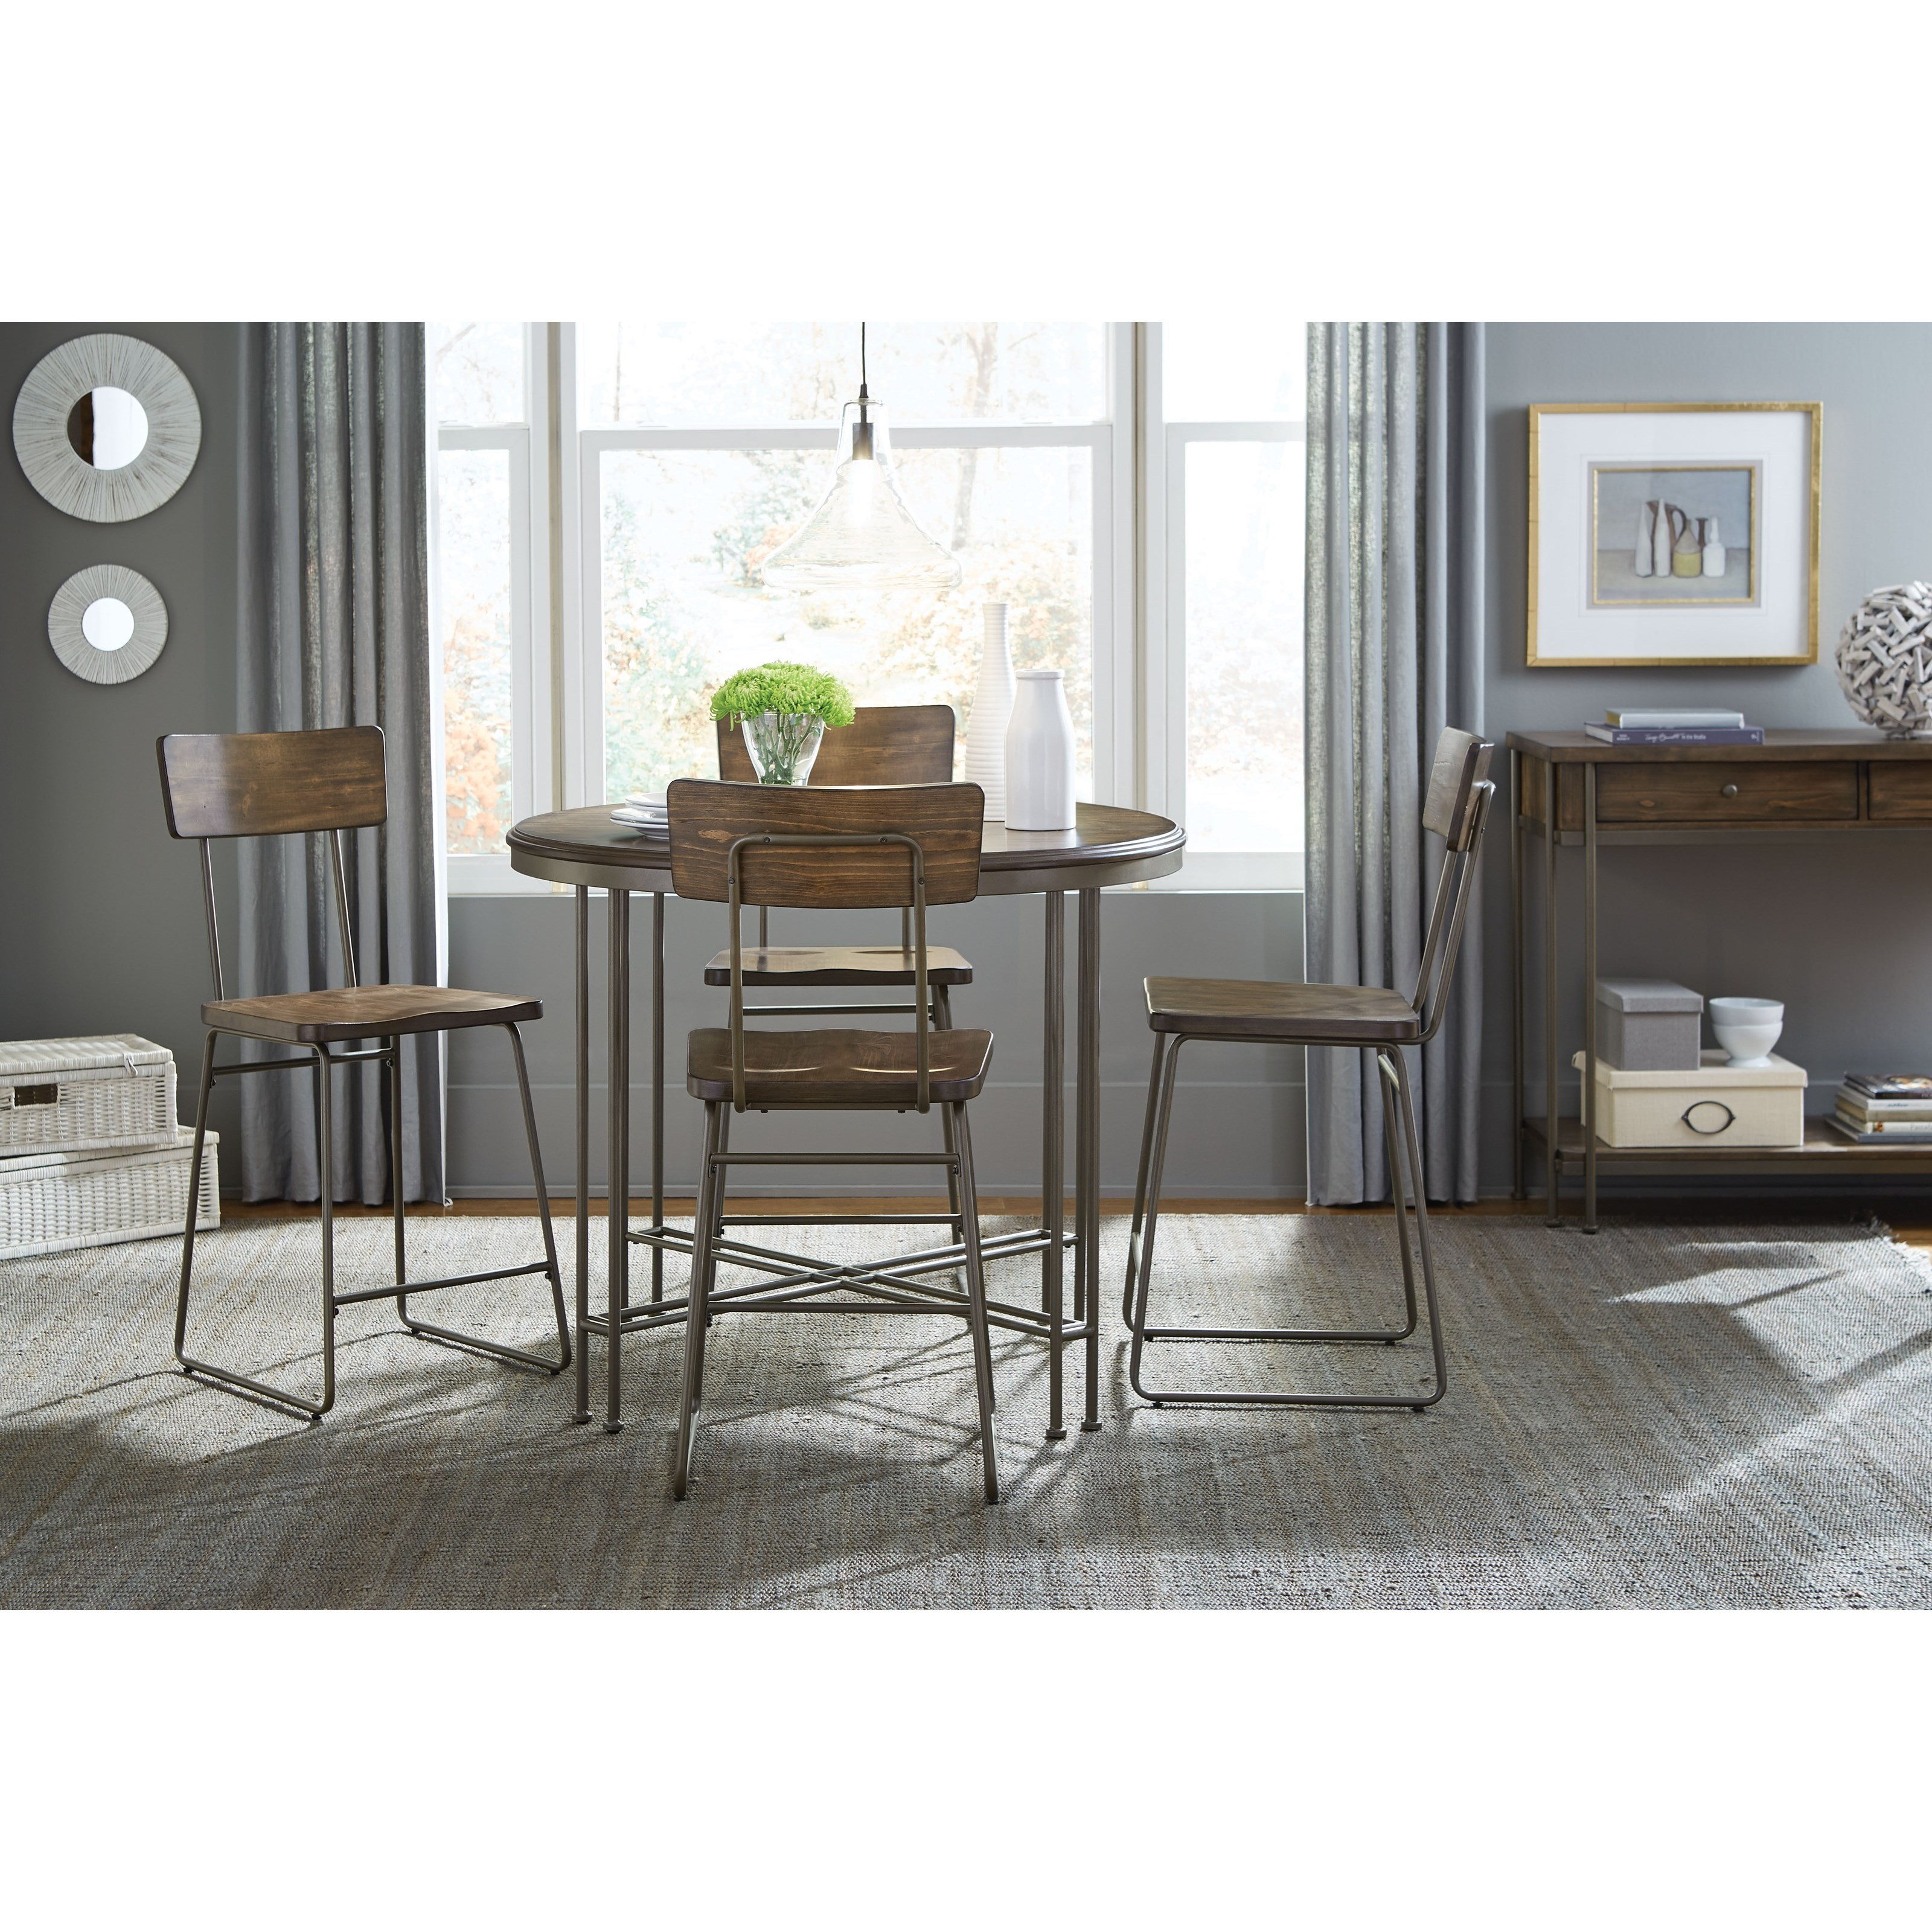 Standard furniture oslo industrial casual dining room for Casual dining room